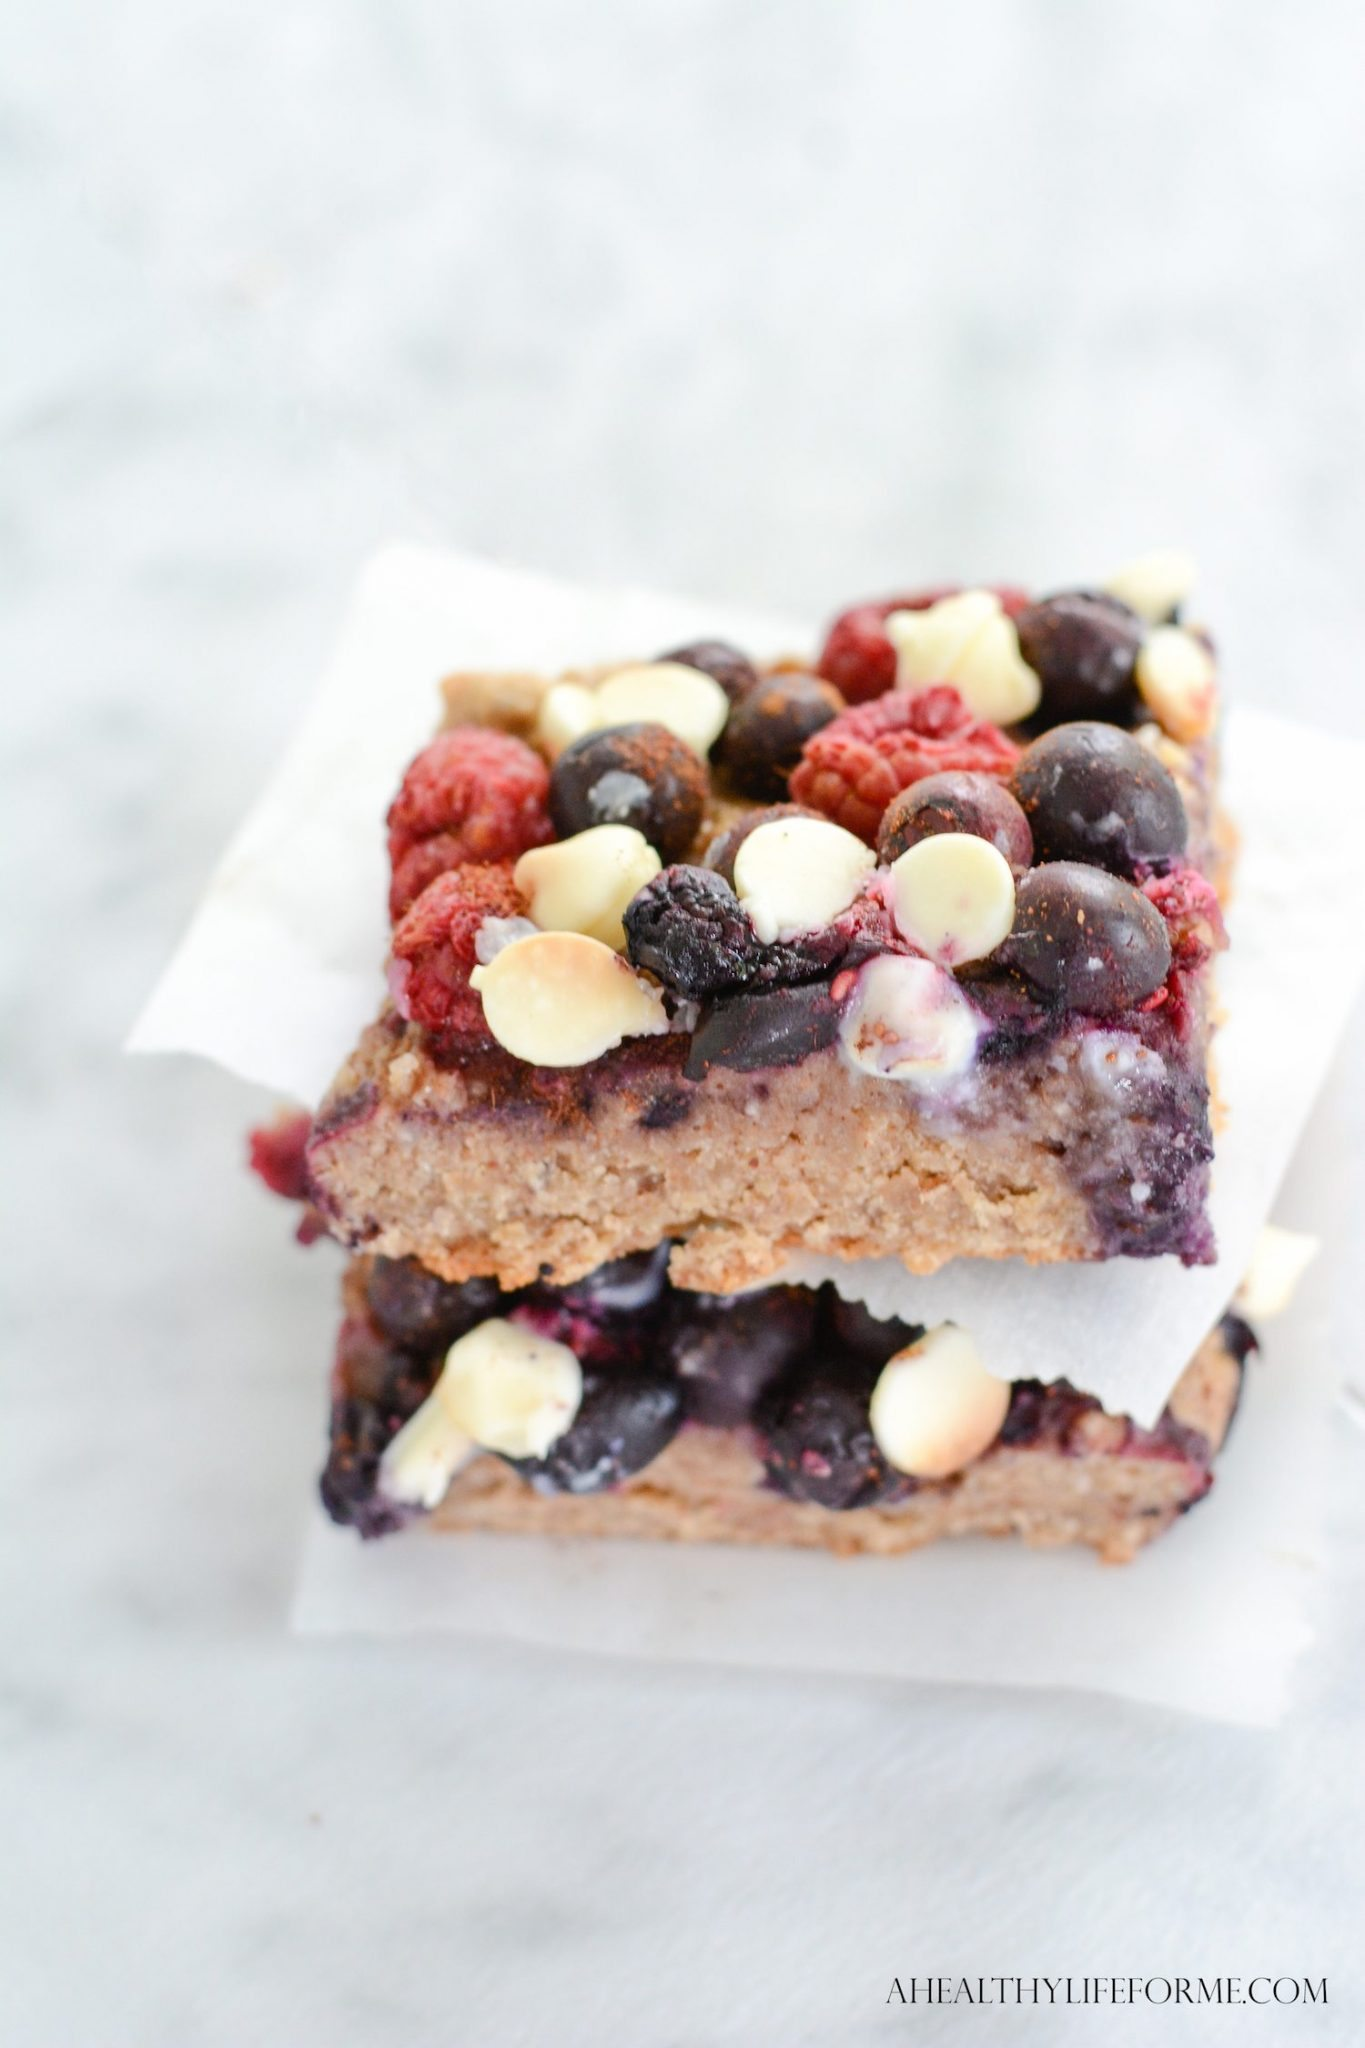 Berry Crumble Bars Gluten Free A Healthy Life For Me